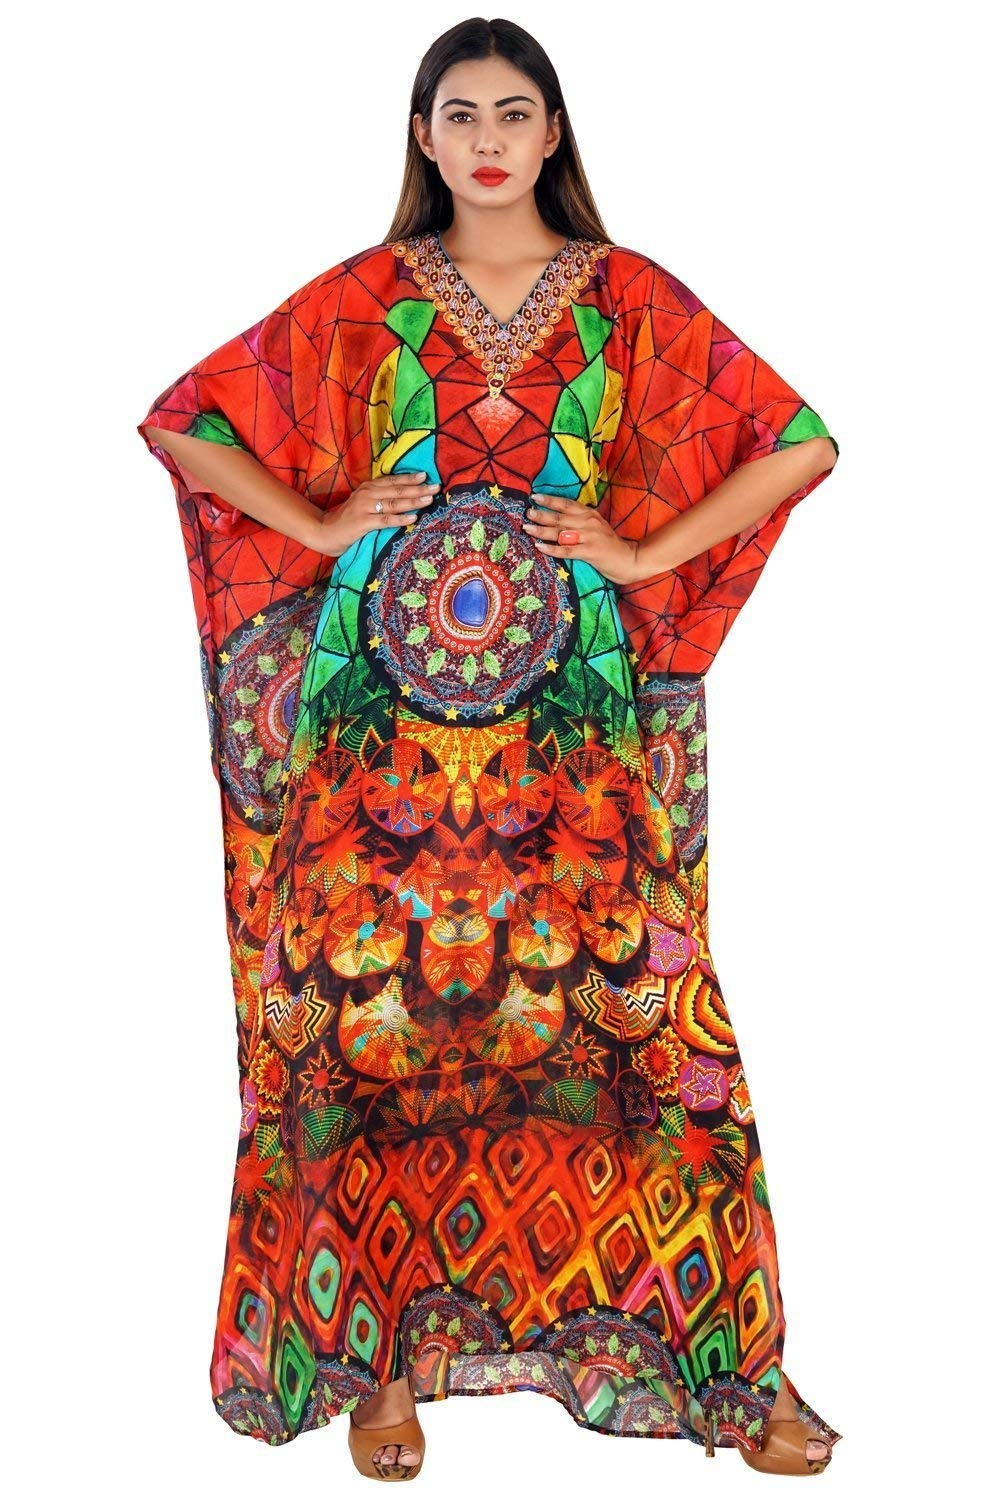 21165d2356 Get Quotations · Heavily emblleshed maxi beach caftan long dressy/silk  kaftan beach and resort wear hand made